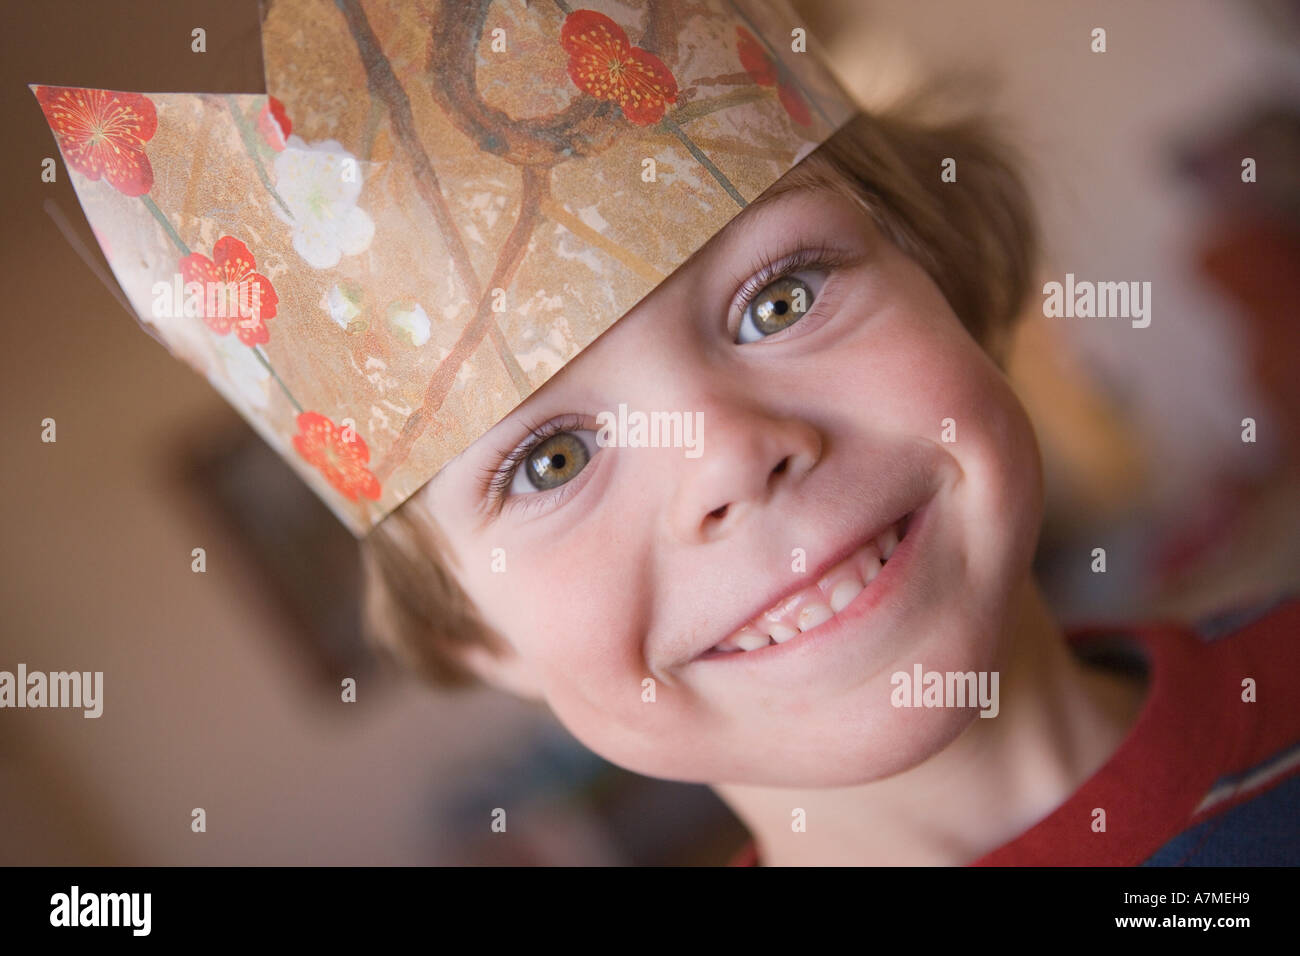 1d77dc0badf57 Young boy wearing paper crown Stock Photo  6783640 - Alamy